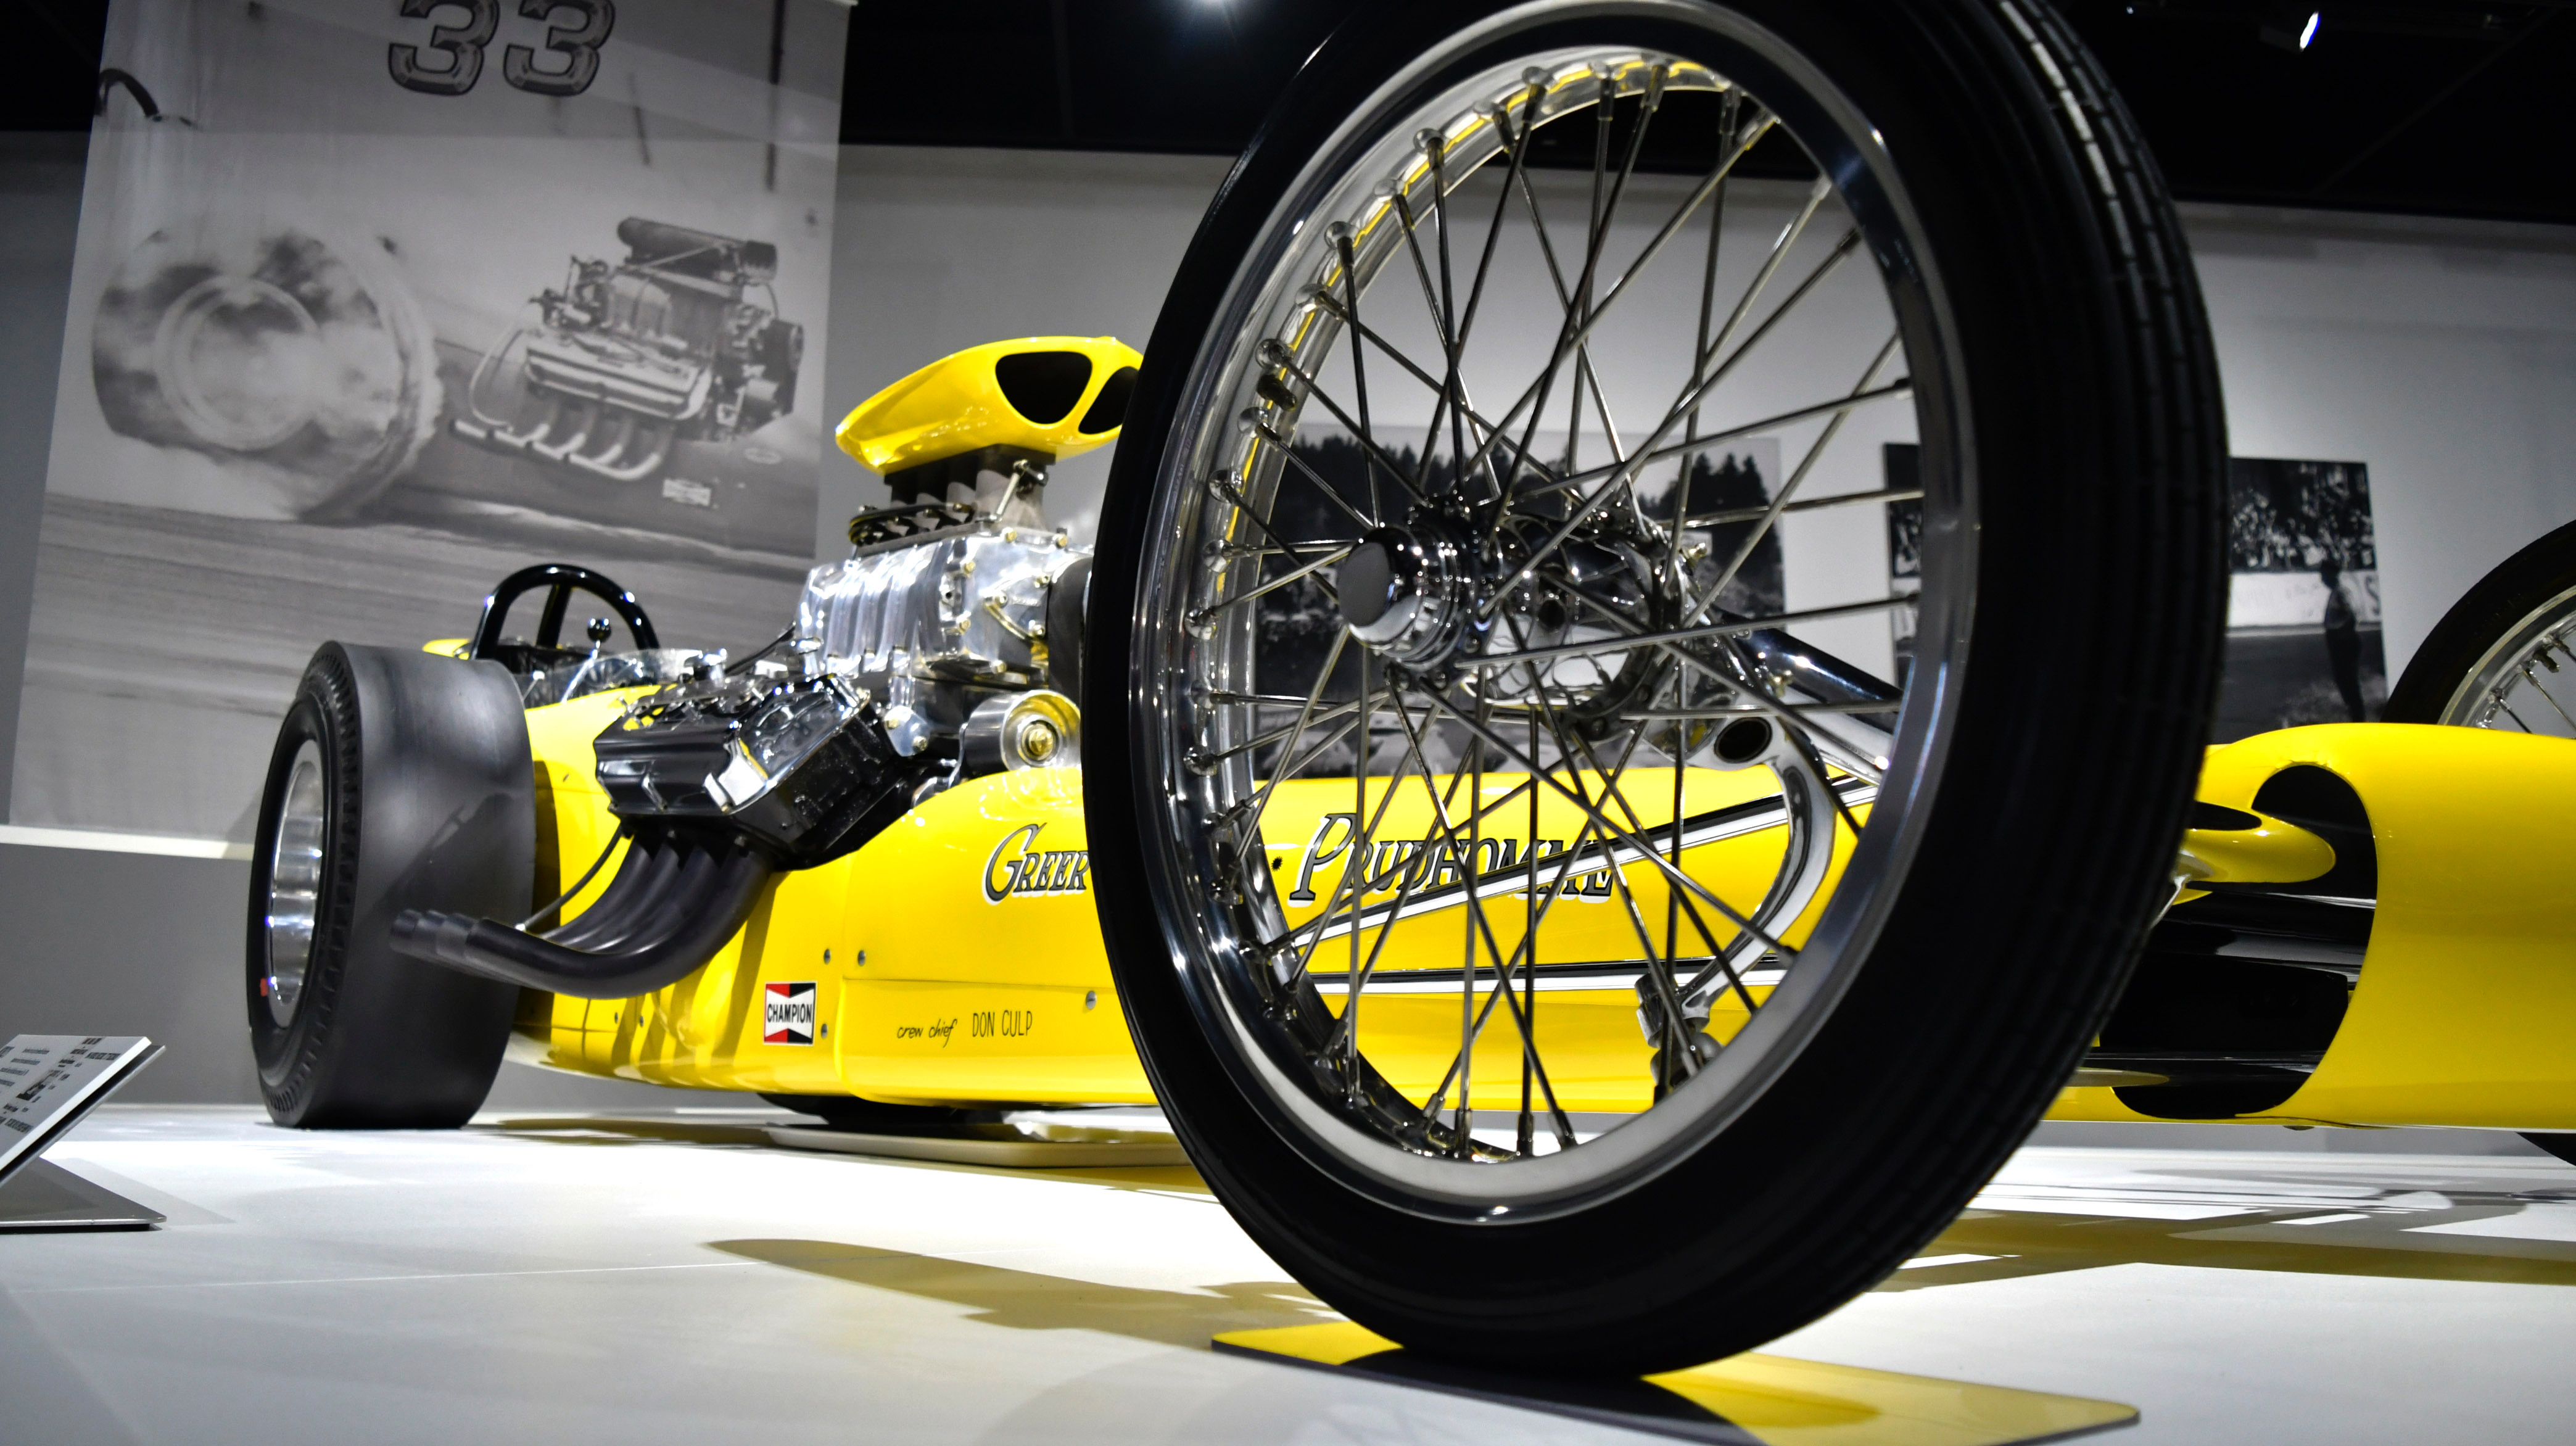 Petersen museum, 'Winning Numbers' on display at the Petersen museum, ClassicCars.com Journal